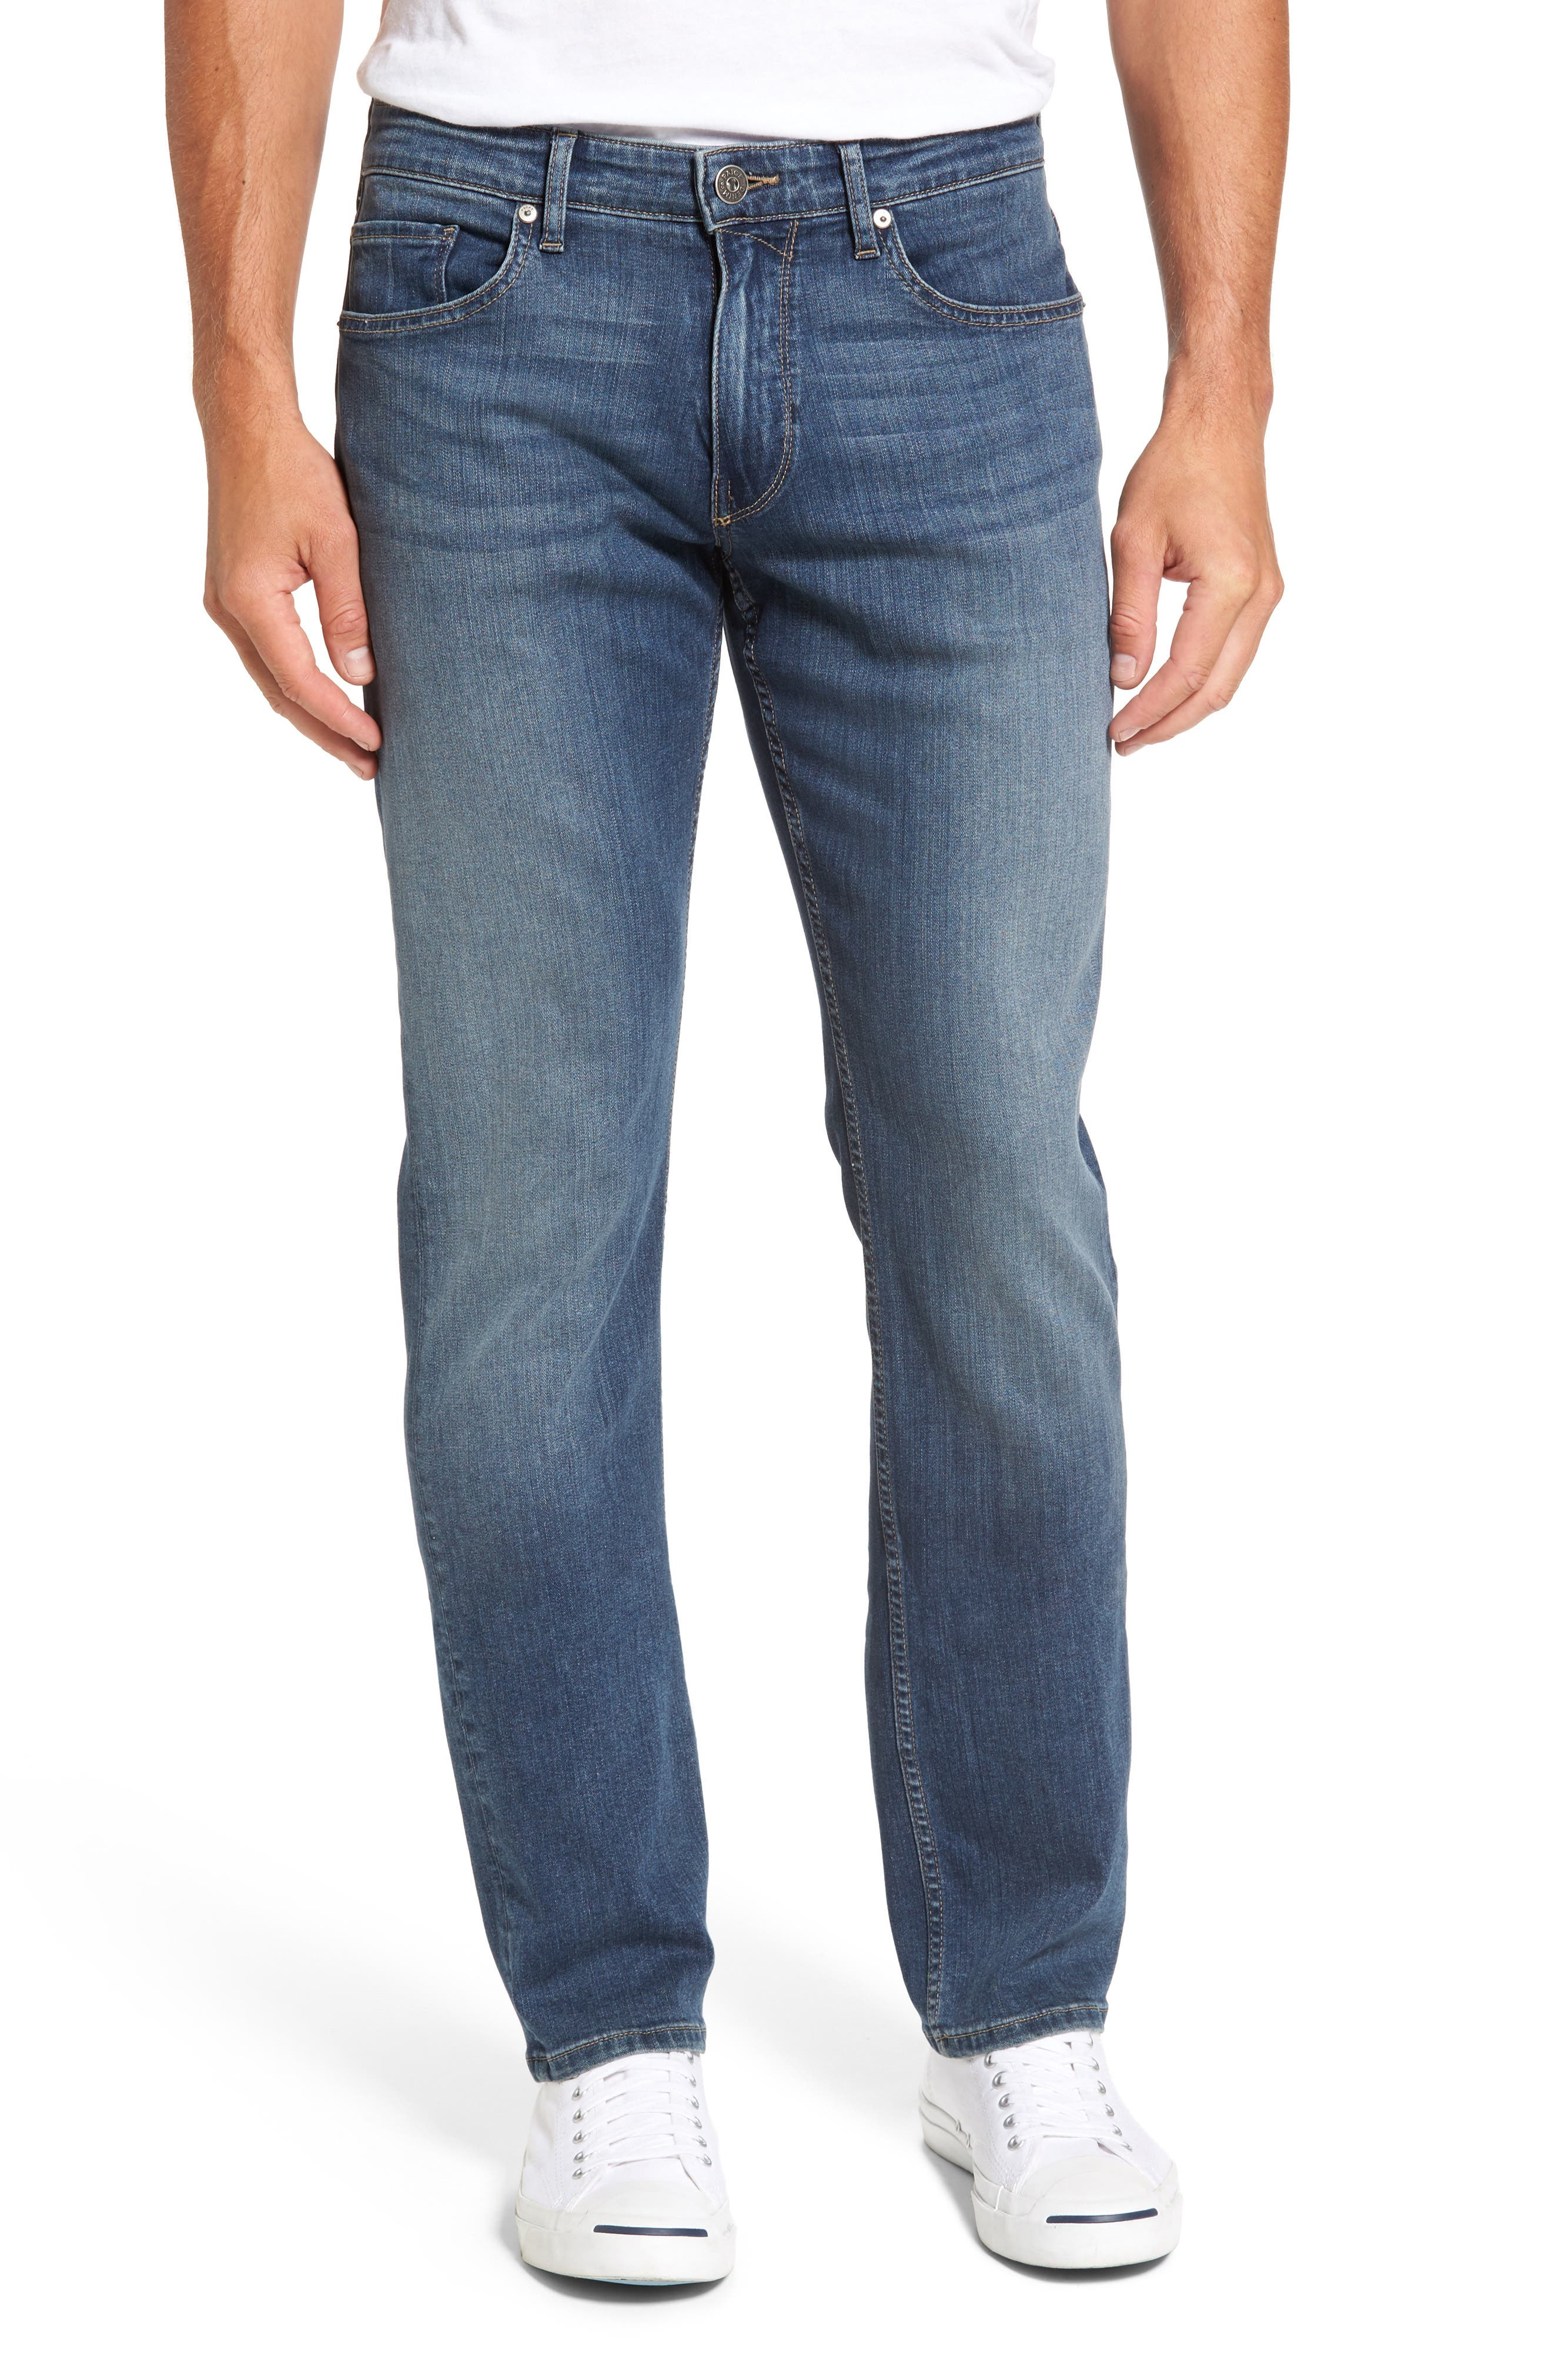 Free Shipping Great Deals Cheap Reliable PAIGE Normandie Straight Fit Jeans (Almont) Cheap Pay With Visa New Arrival Sale Online 3DQ6SPnjL